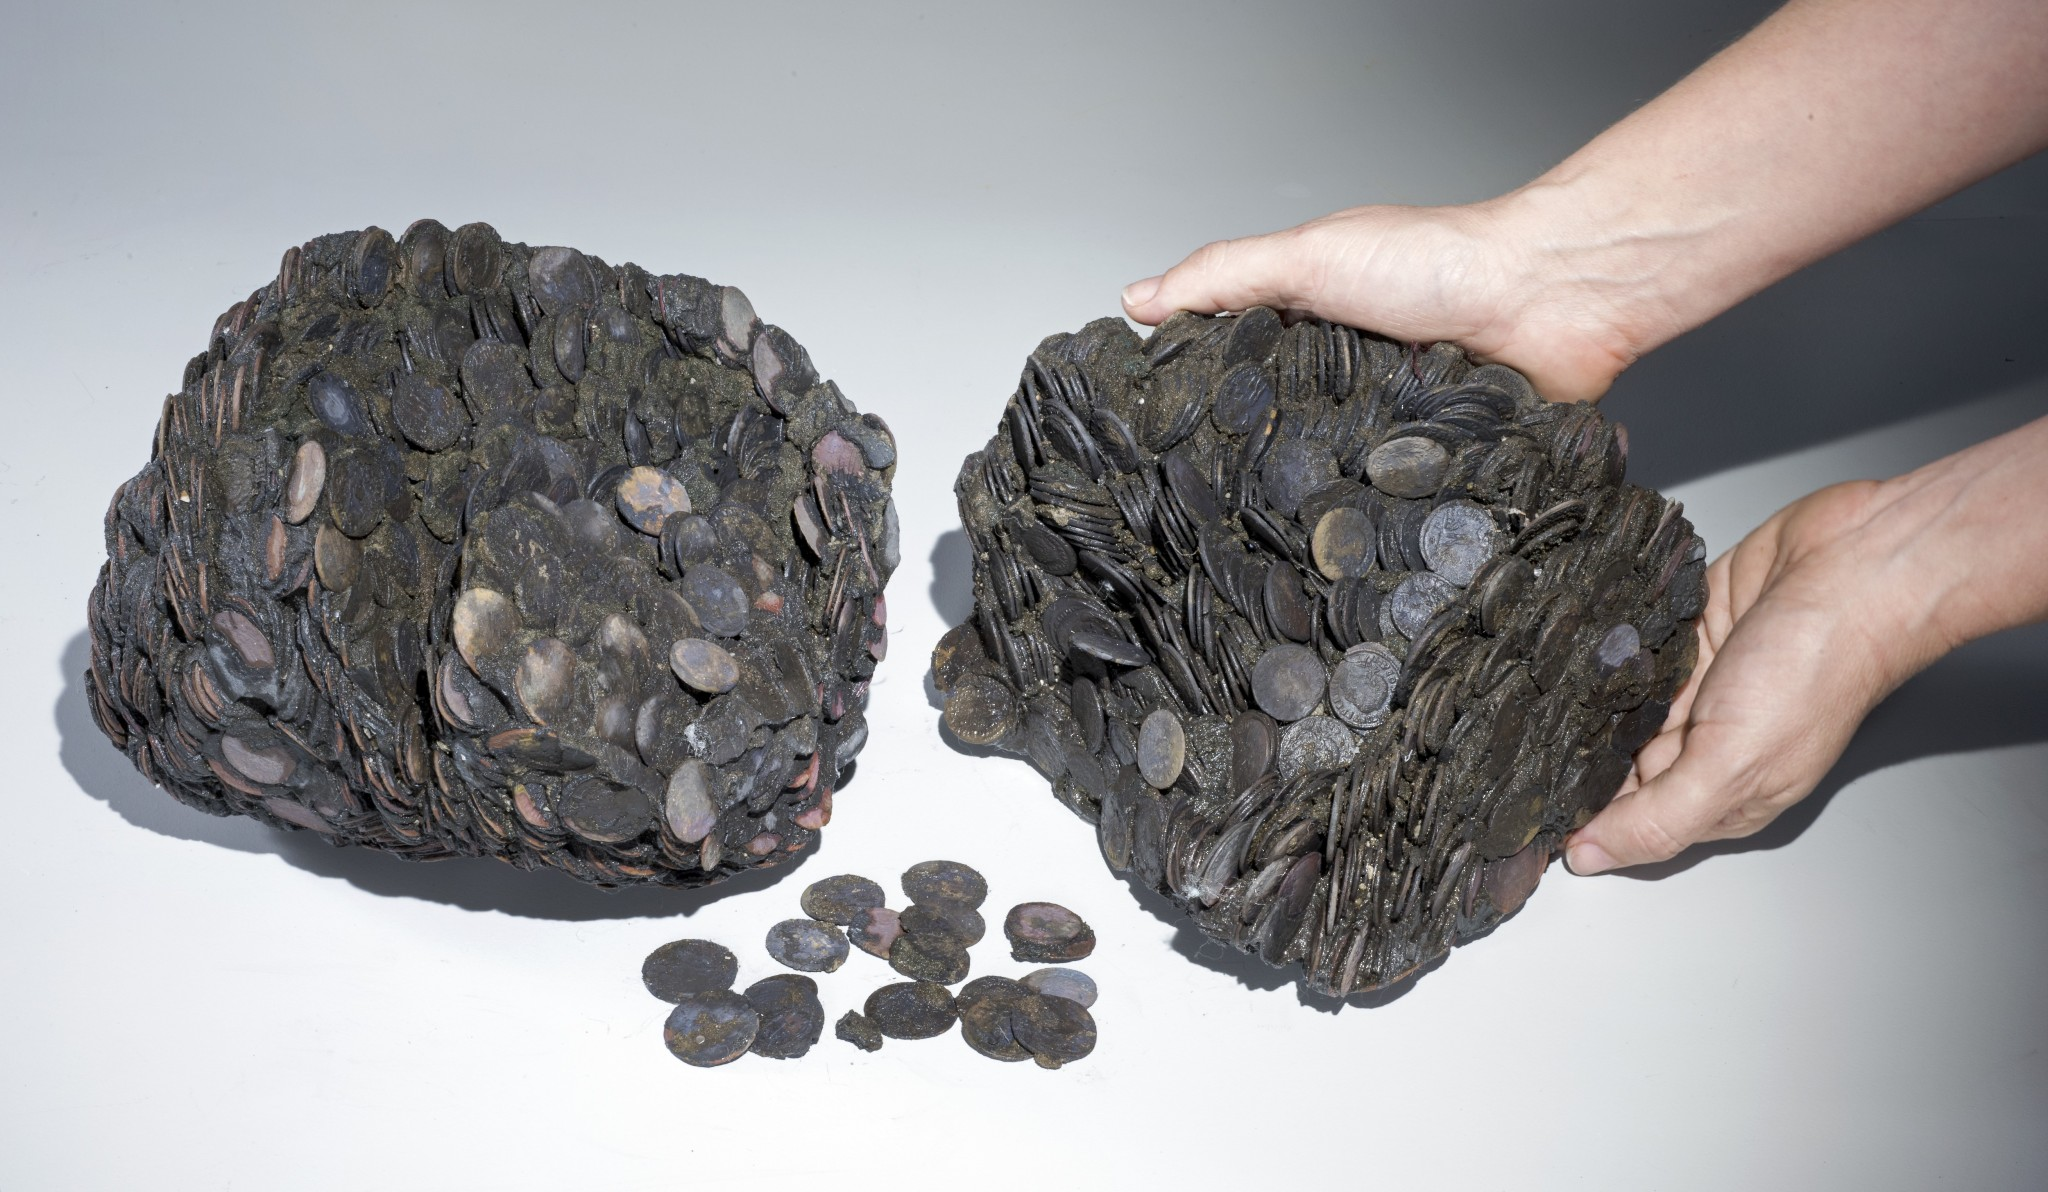 Lumps of coins that were discovered at sea, weighing a total of c. 20 kilograms. Photo by Clara Amit, courtesy of the Israel Antiquities Authority